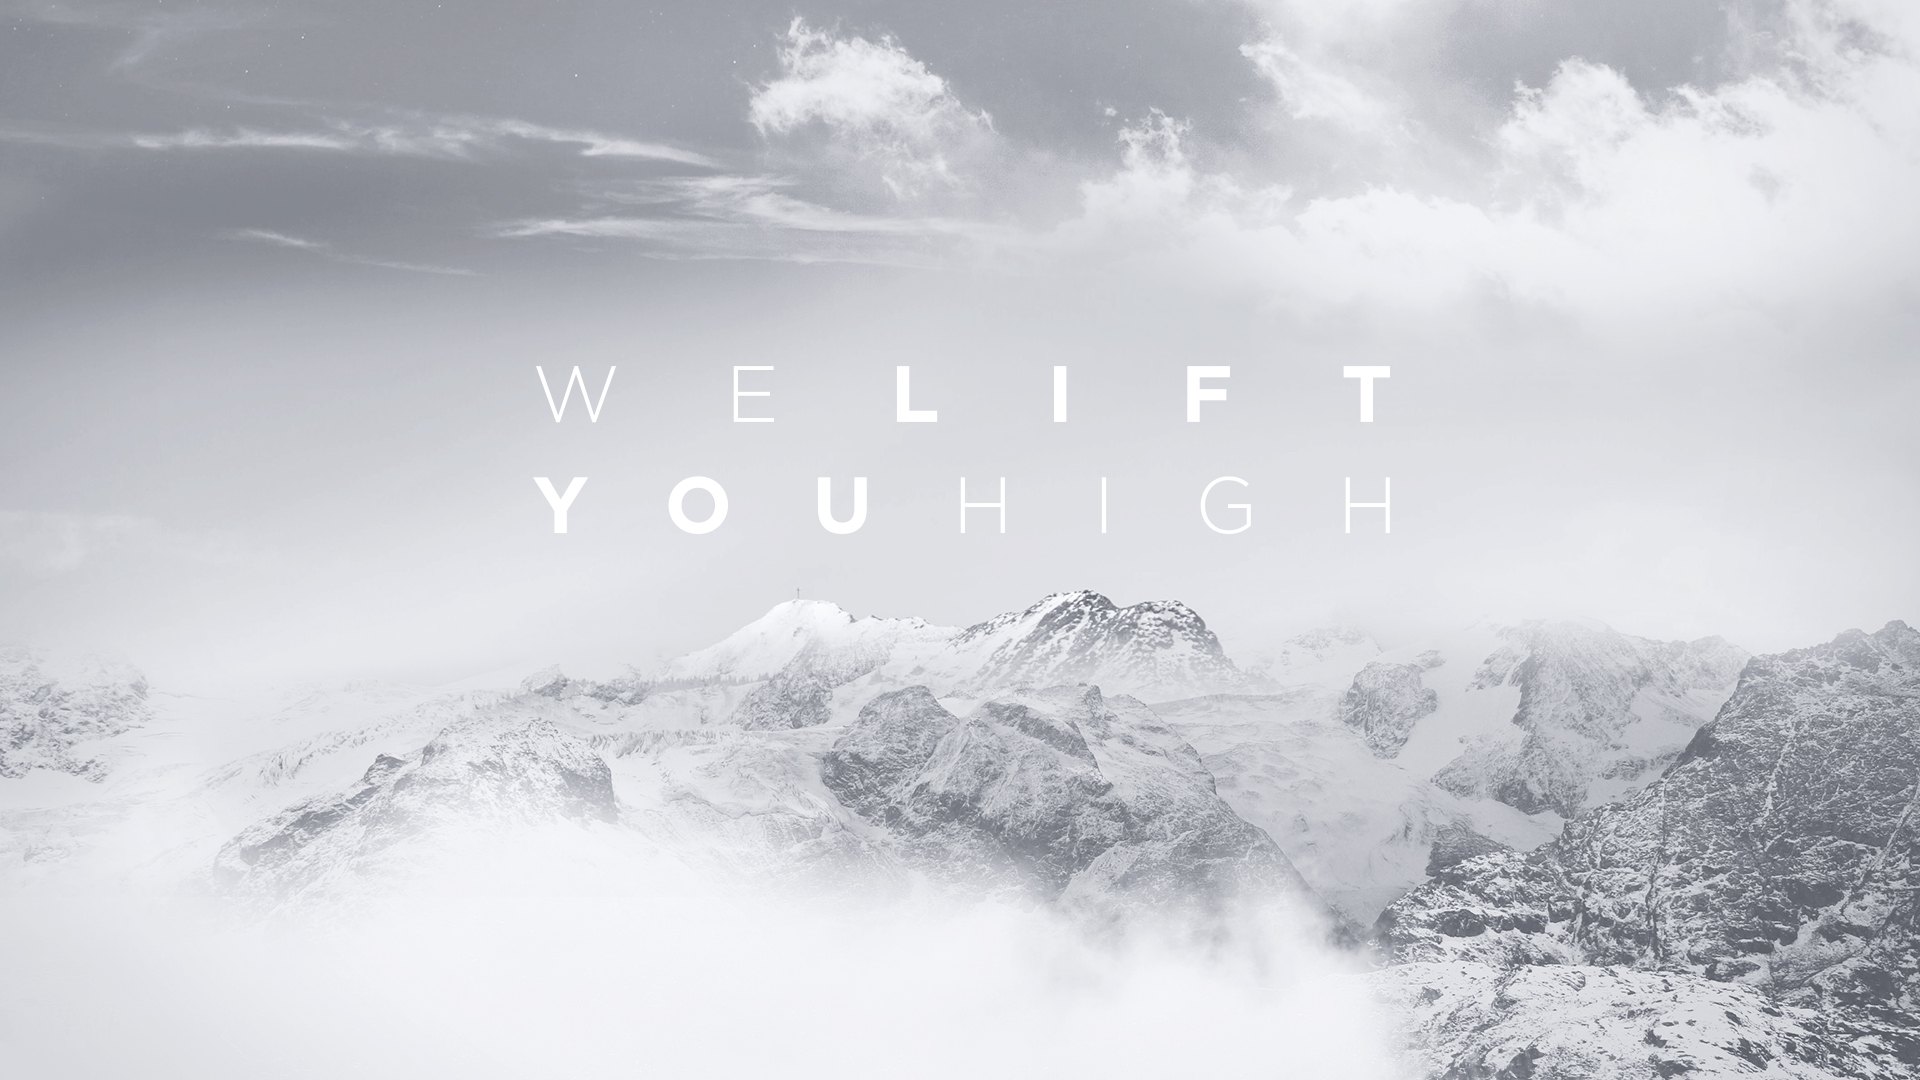 We Lift You High Graphic (JPG)